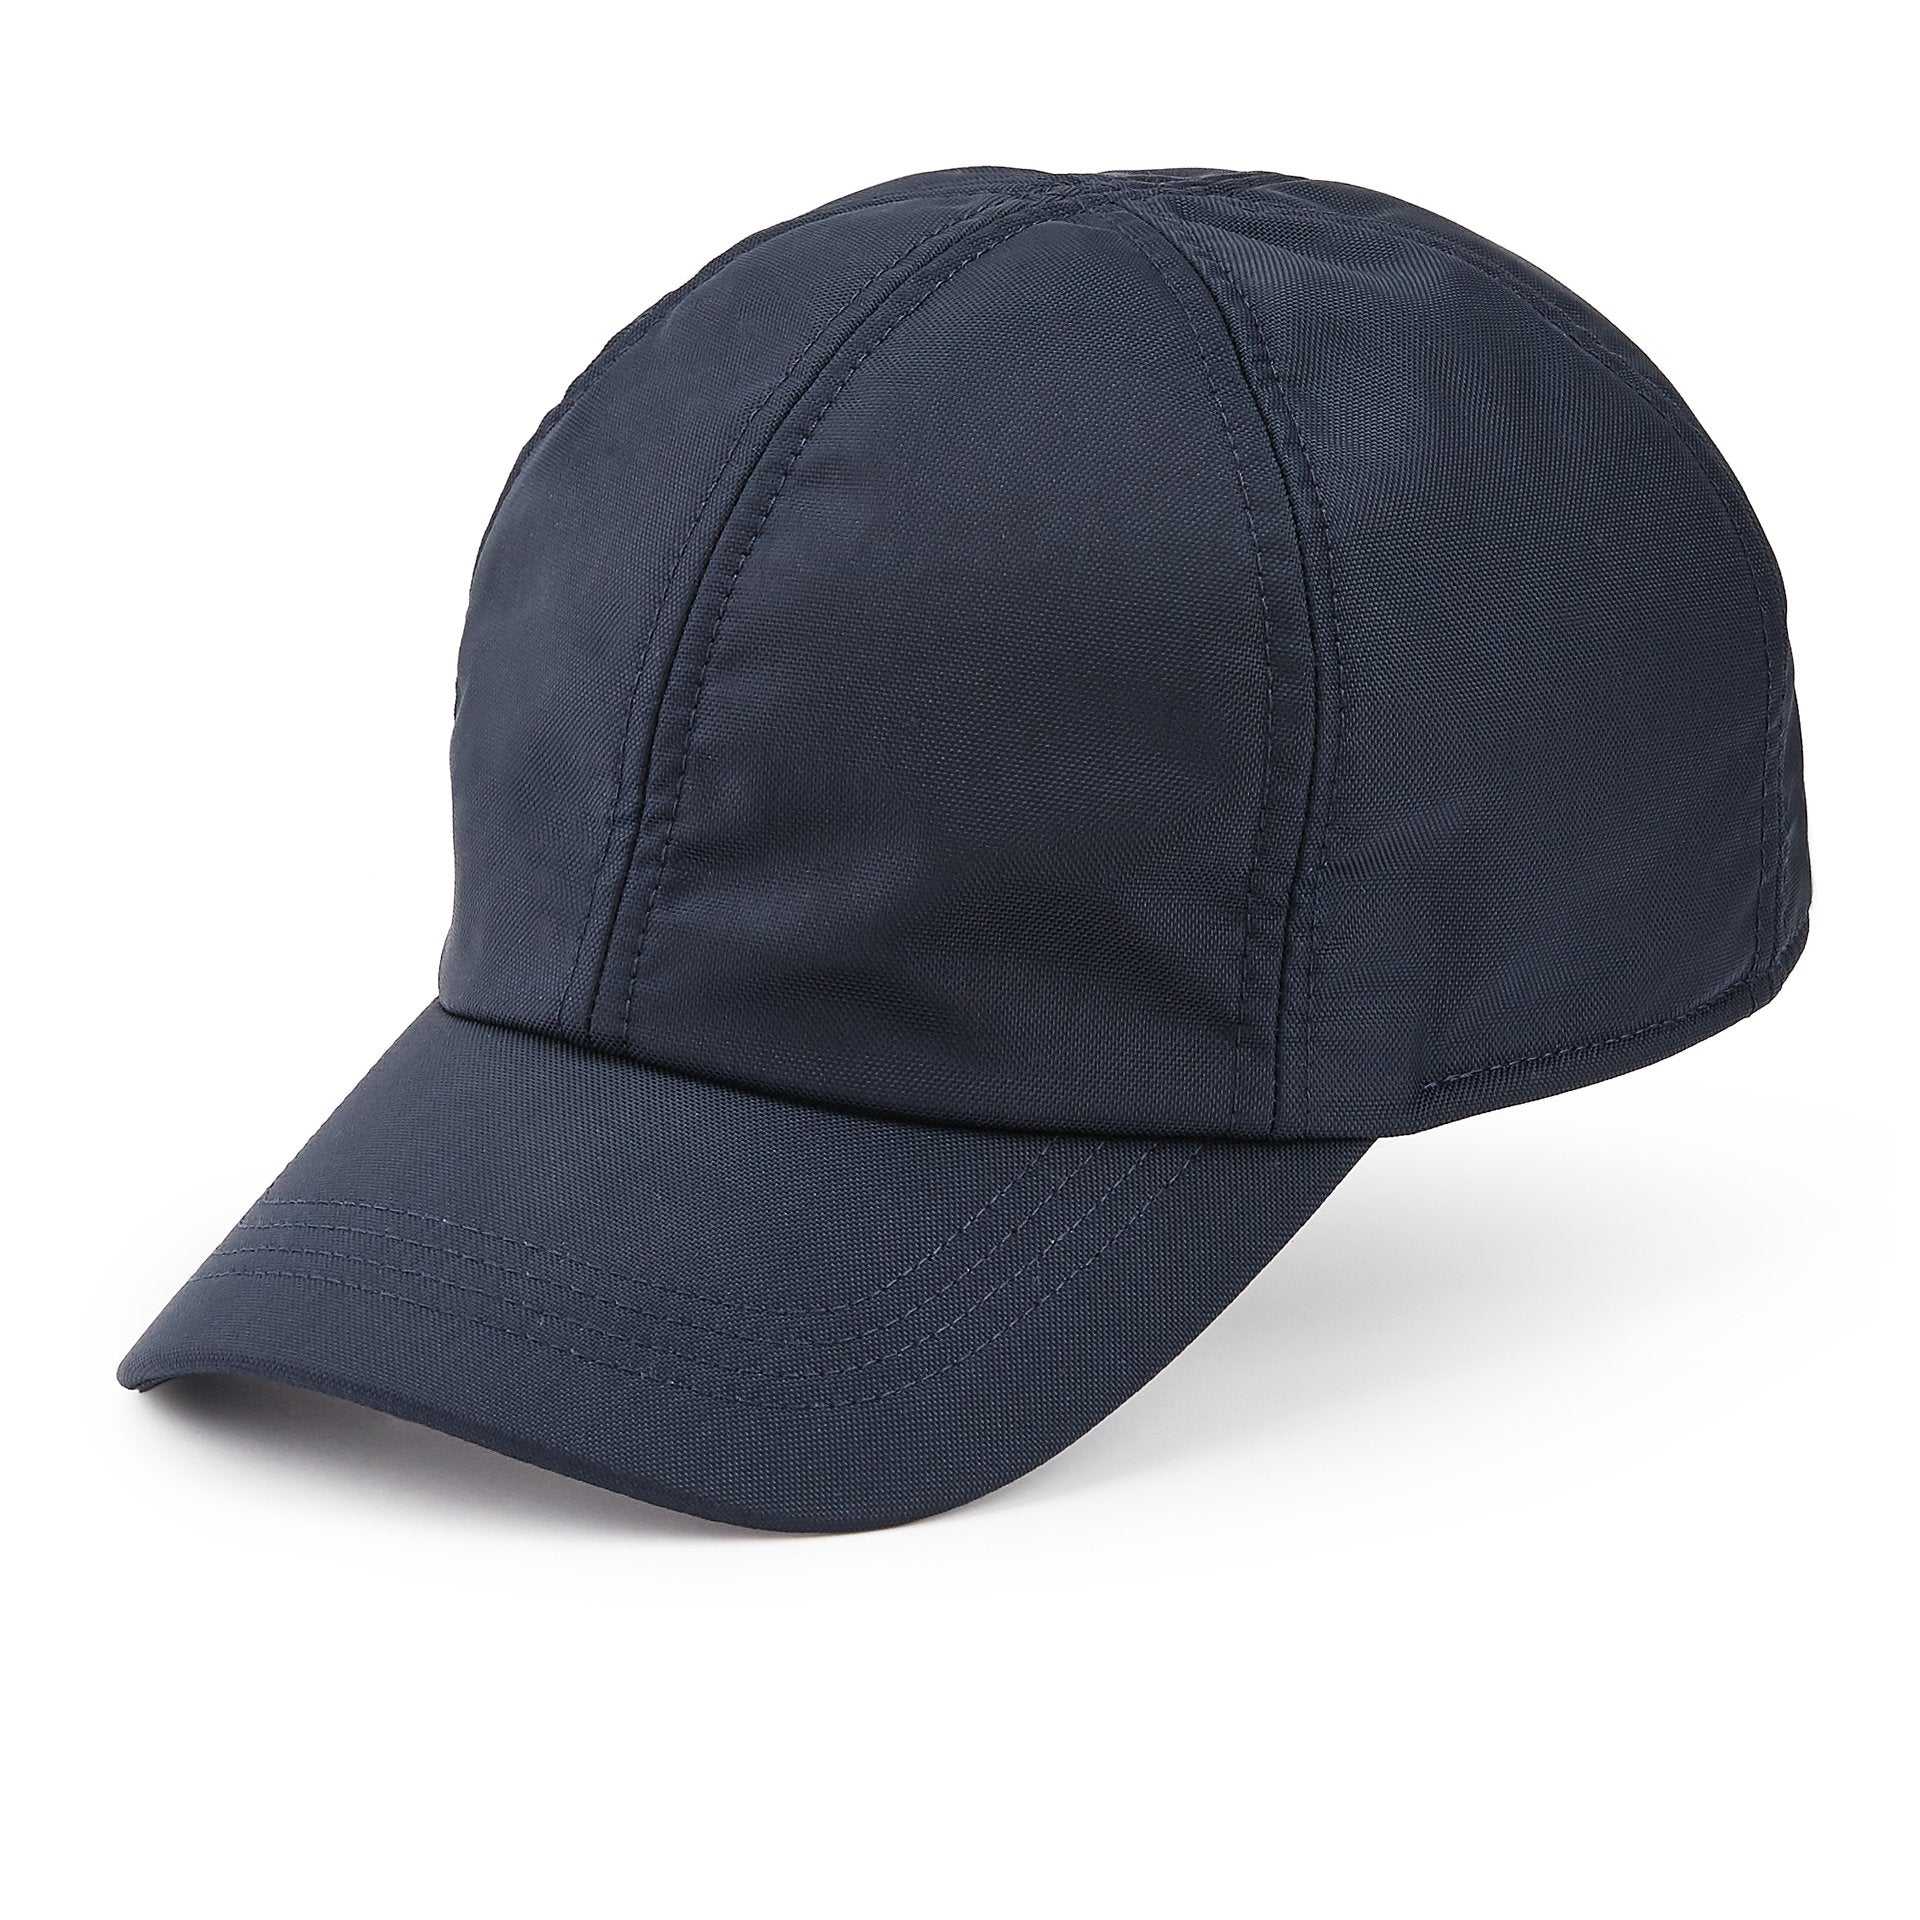 Waterproof Zermatt baseball cap - Waterproof hats - Lock & Co. Hatters London UK